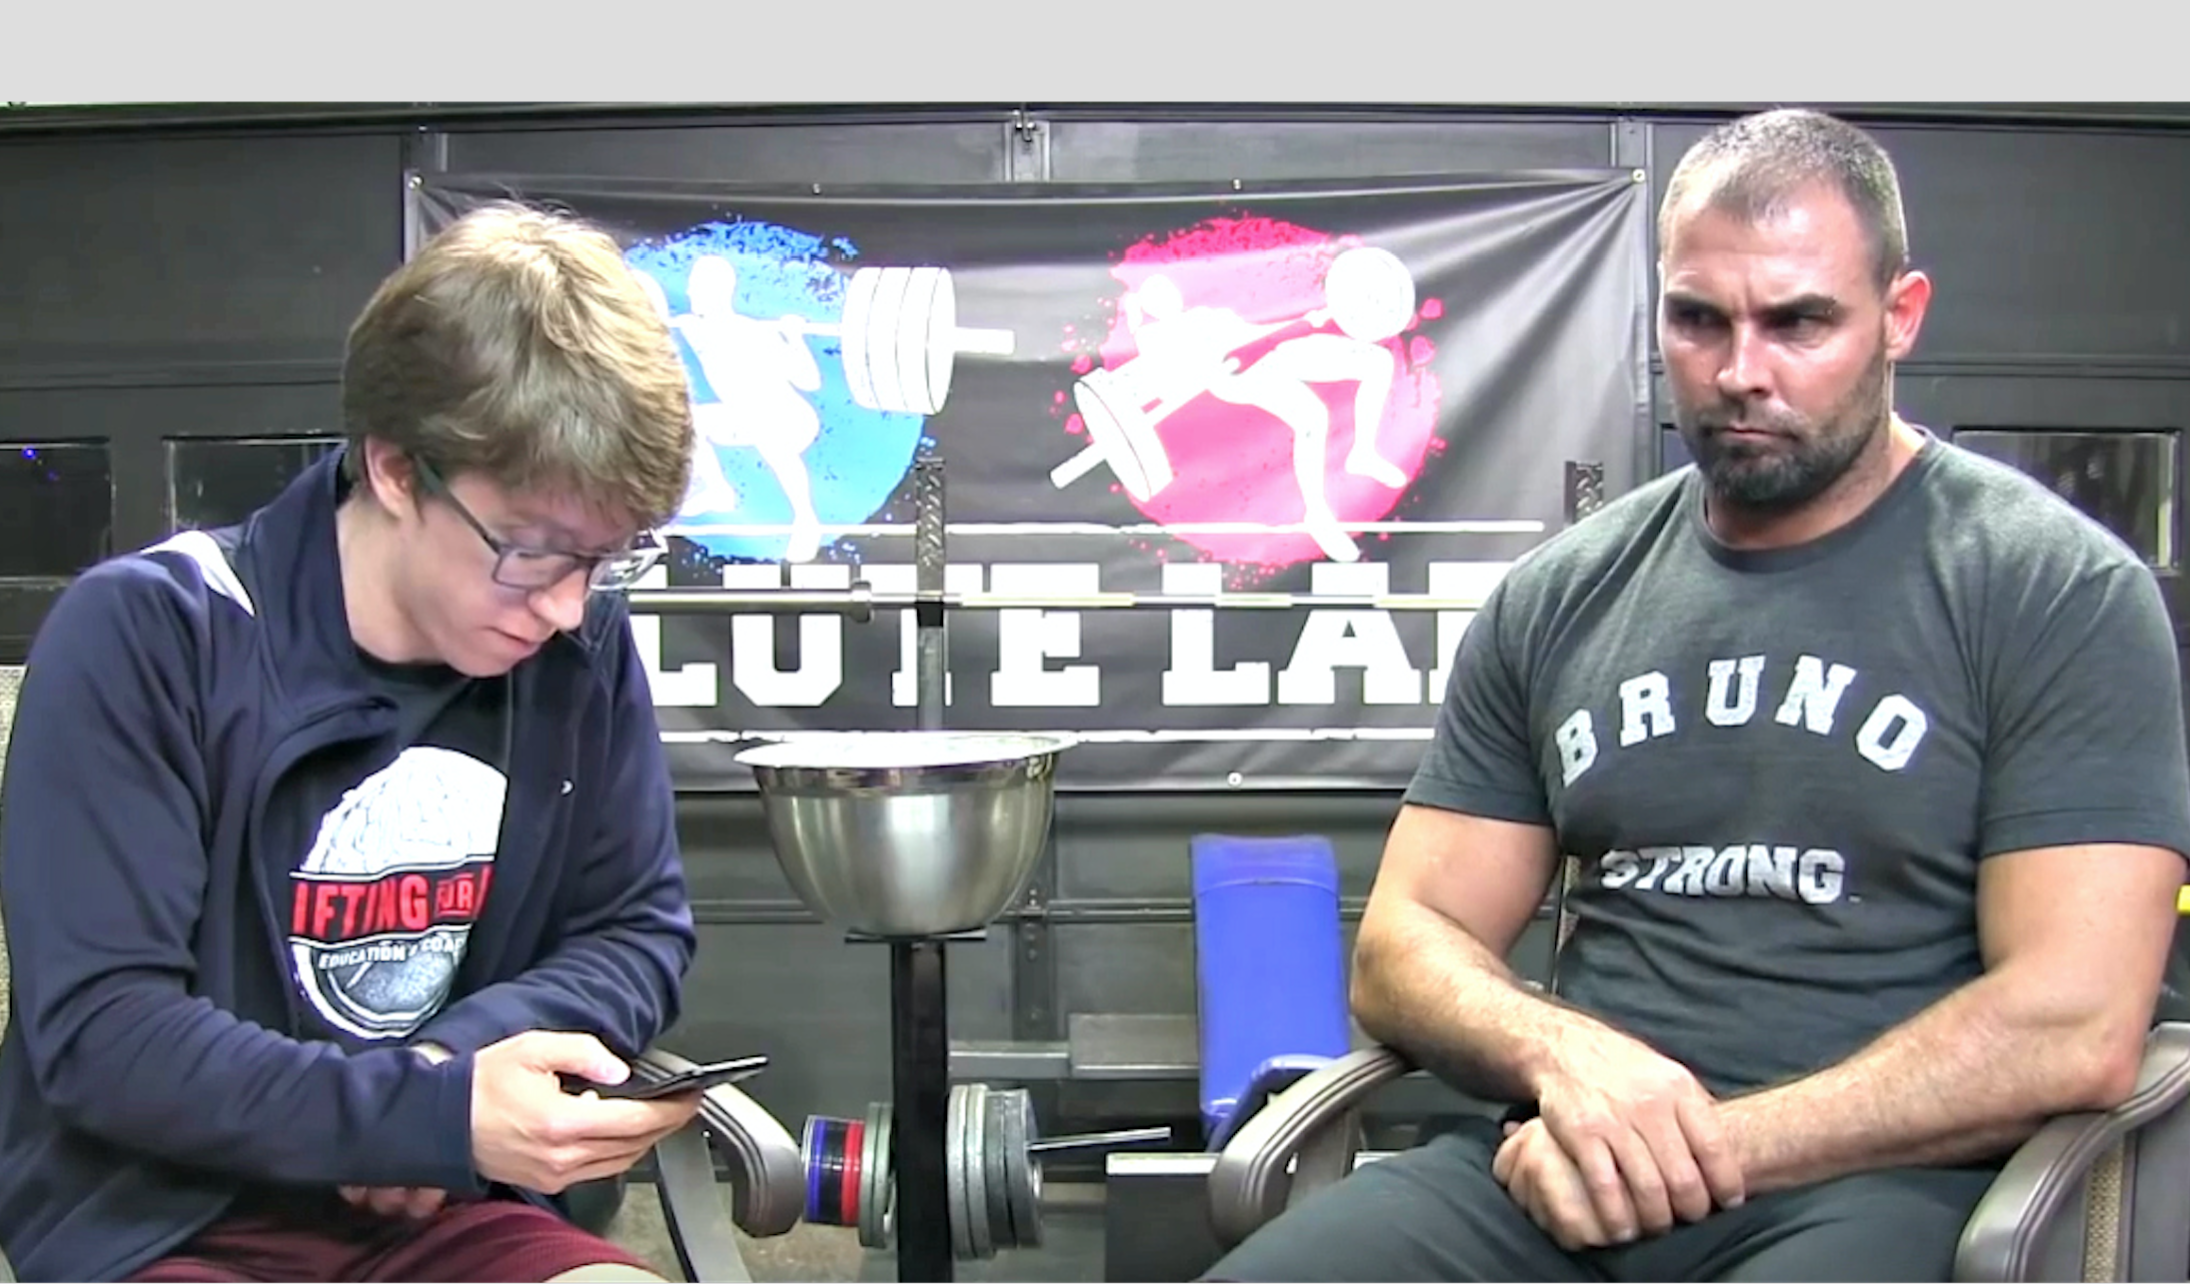 Are Unweighted Curls Legit? & More Questions with Bret Contreras